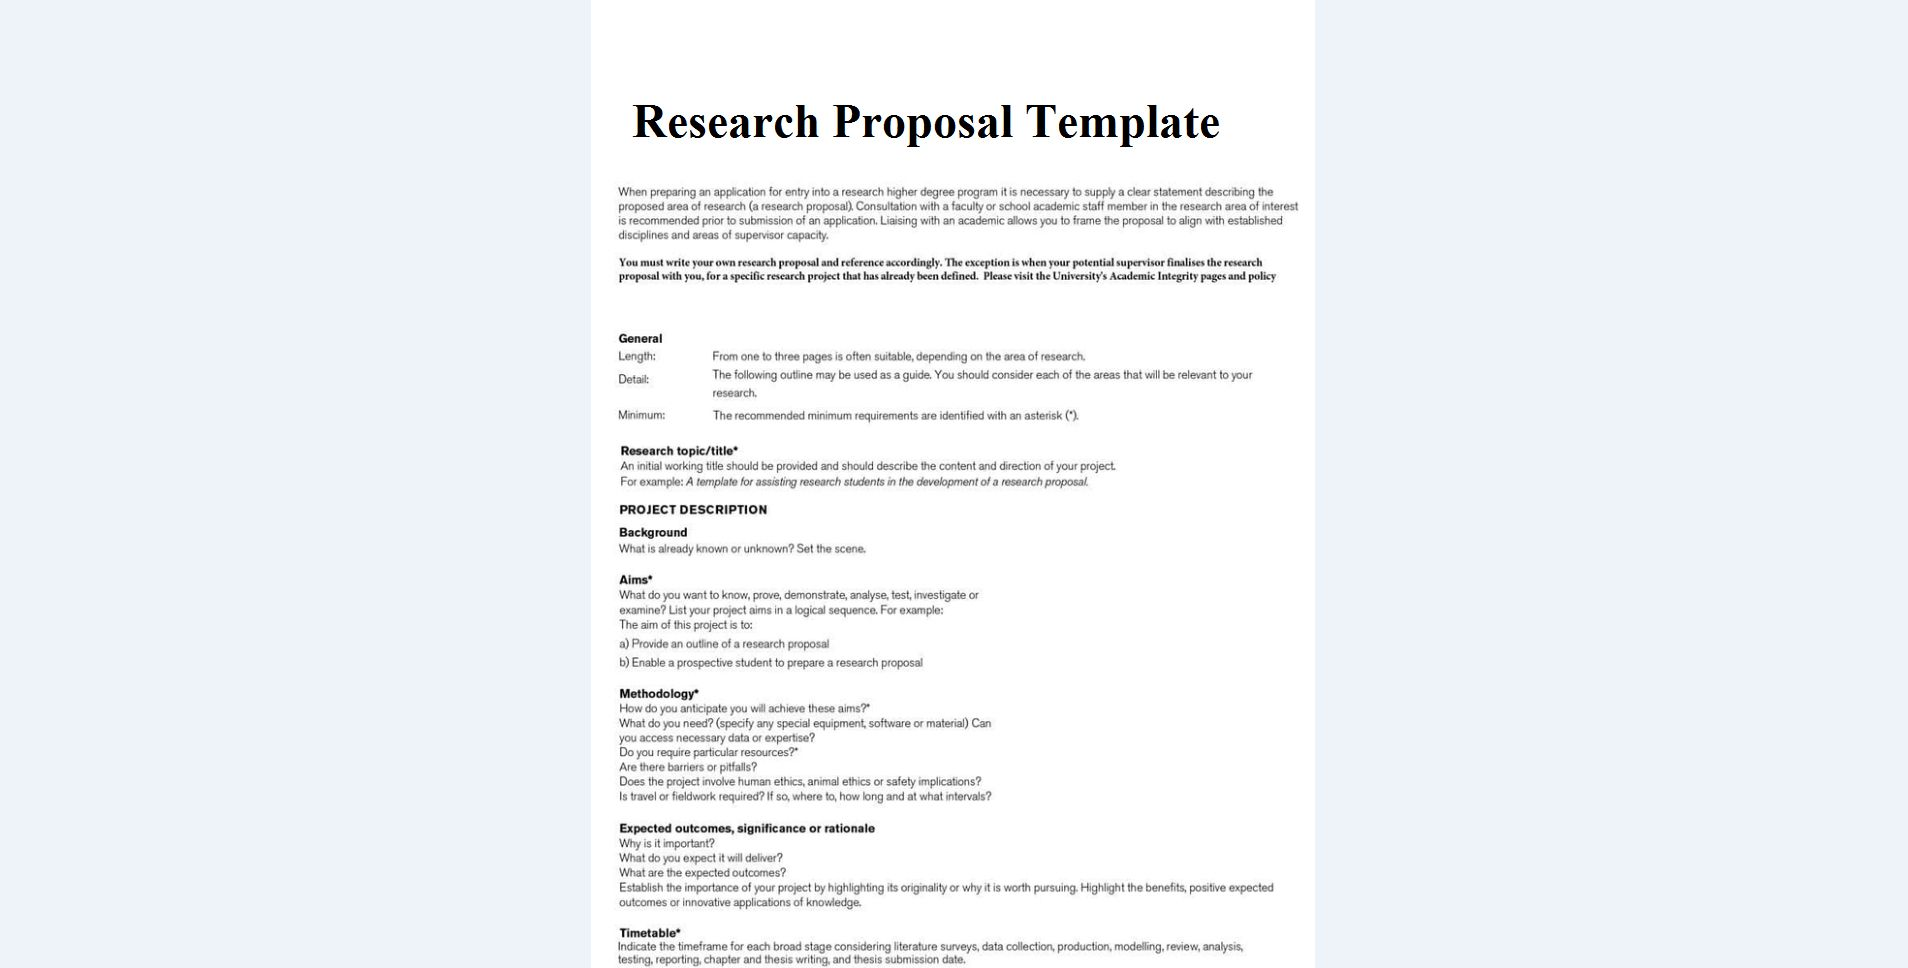 How To Rite Research Grant Proposal Sample Project Abstract With Regard To Research Grant Proposal Templat Proposal Templates Research Proposal Proposal Sample